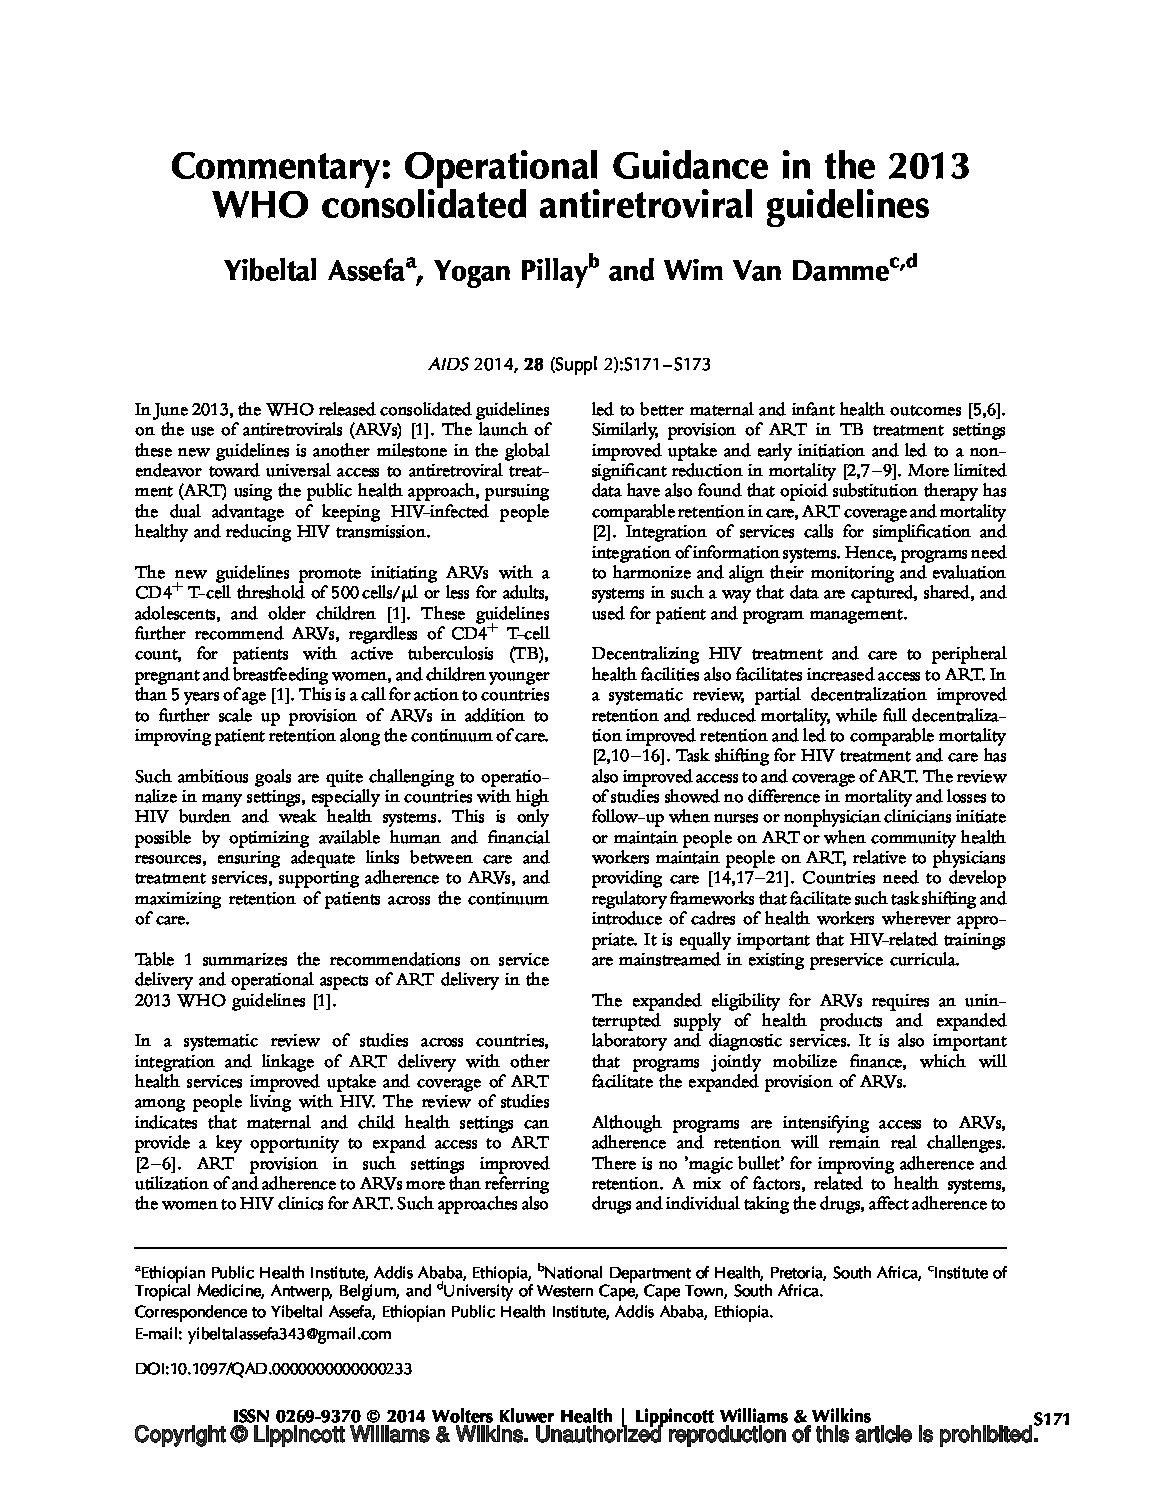 Commentary operational guidance in the 2013 WHO consolidated antiretroviral guidelines.